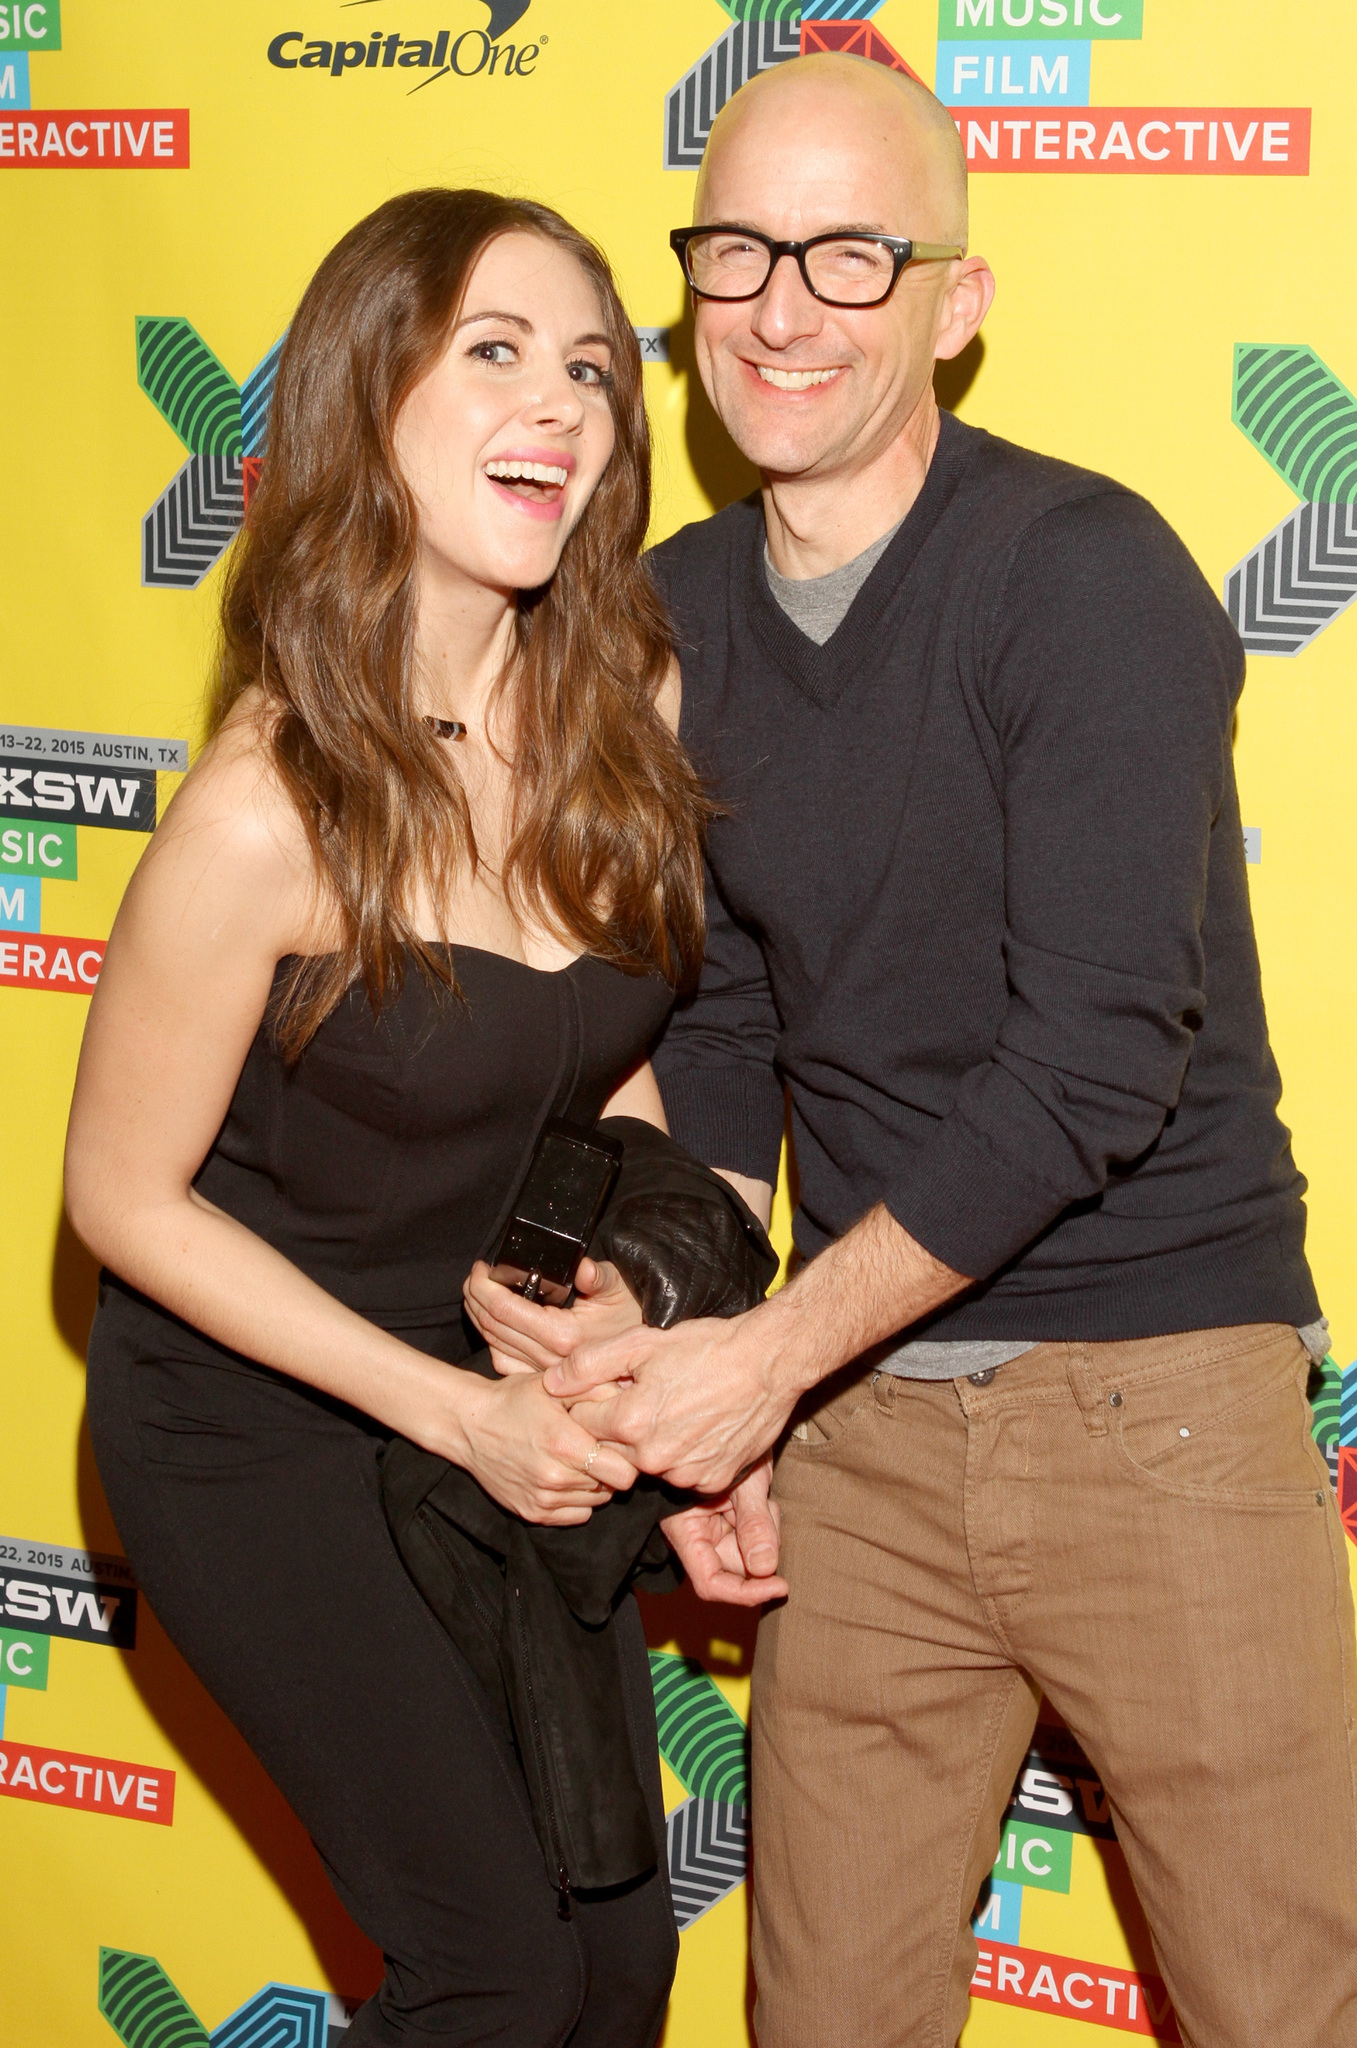 Jim Rash and Alison Brie at an event for Community (2009)